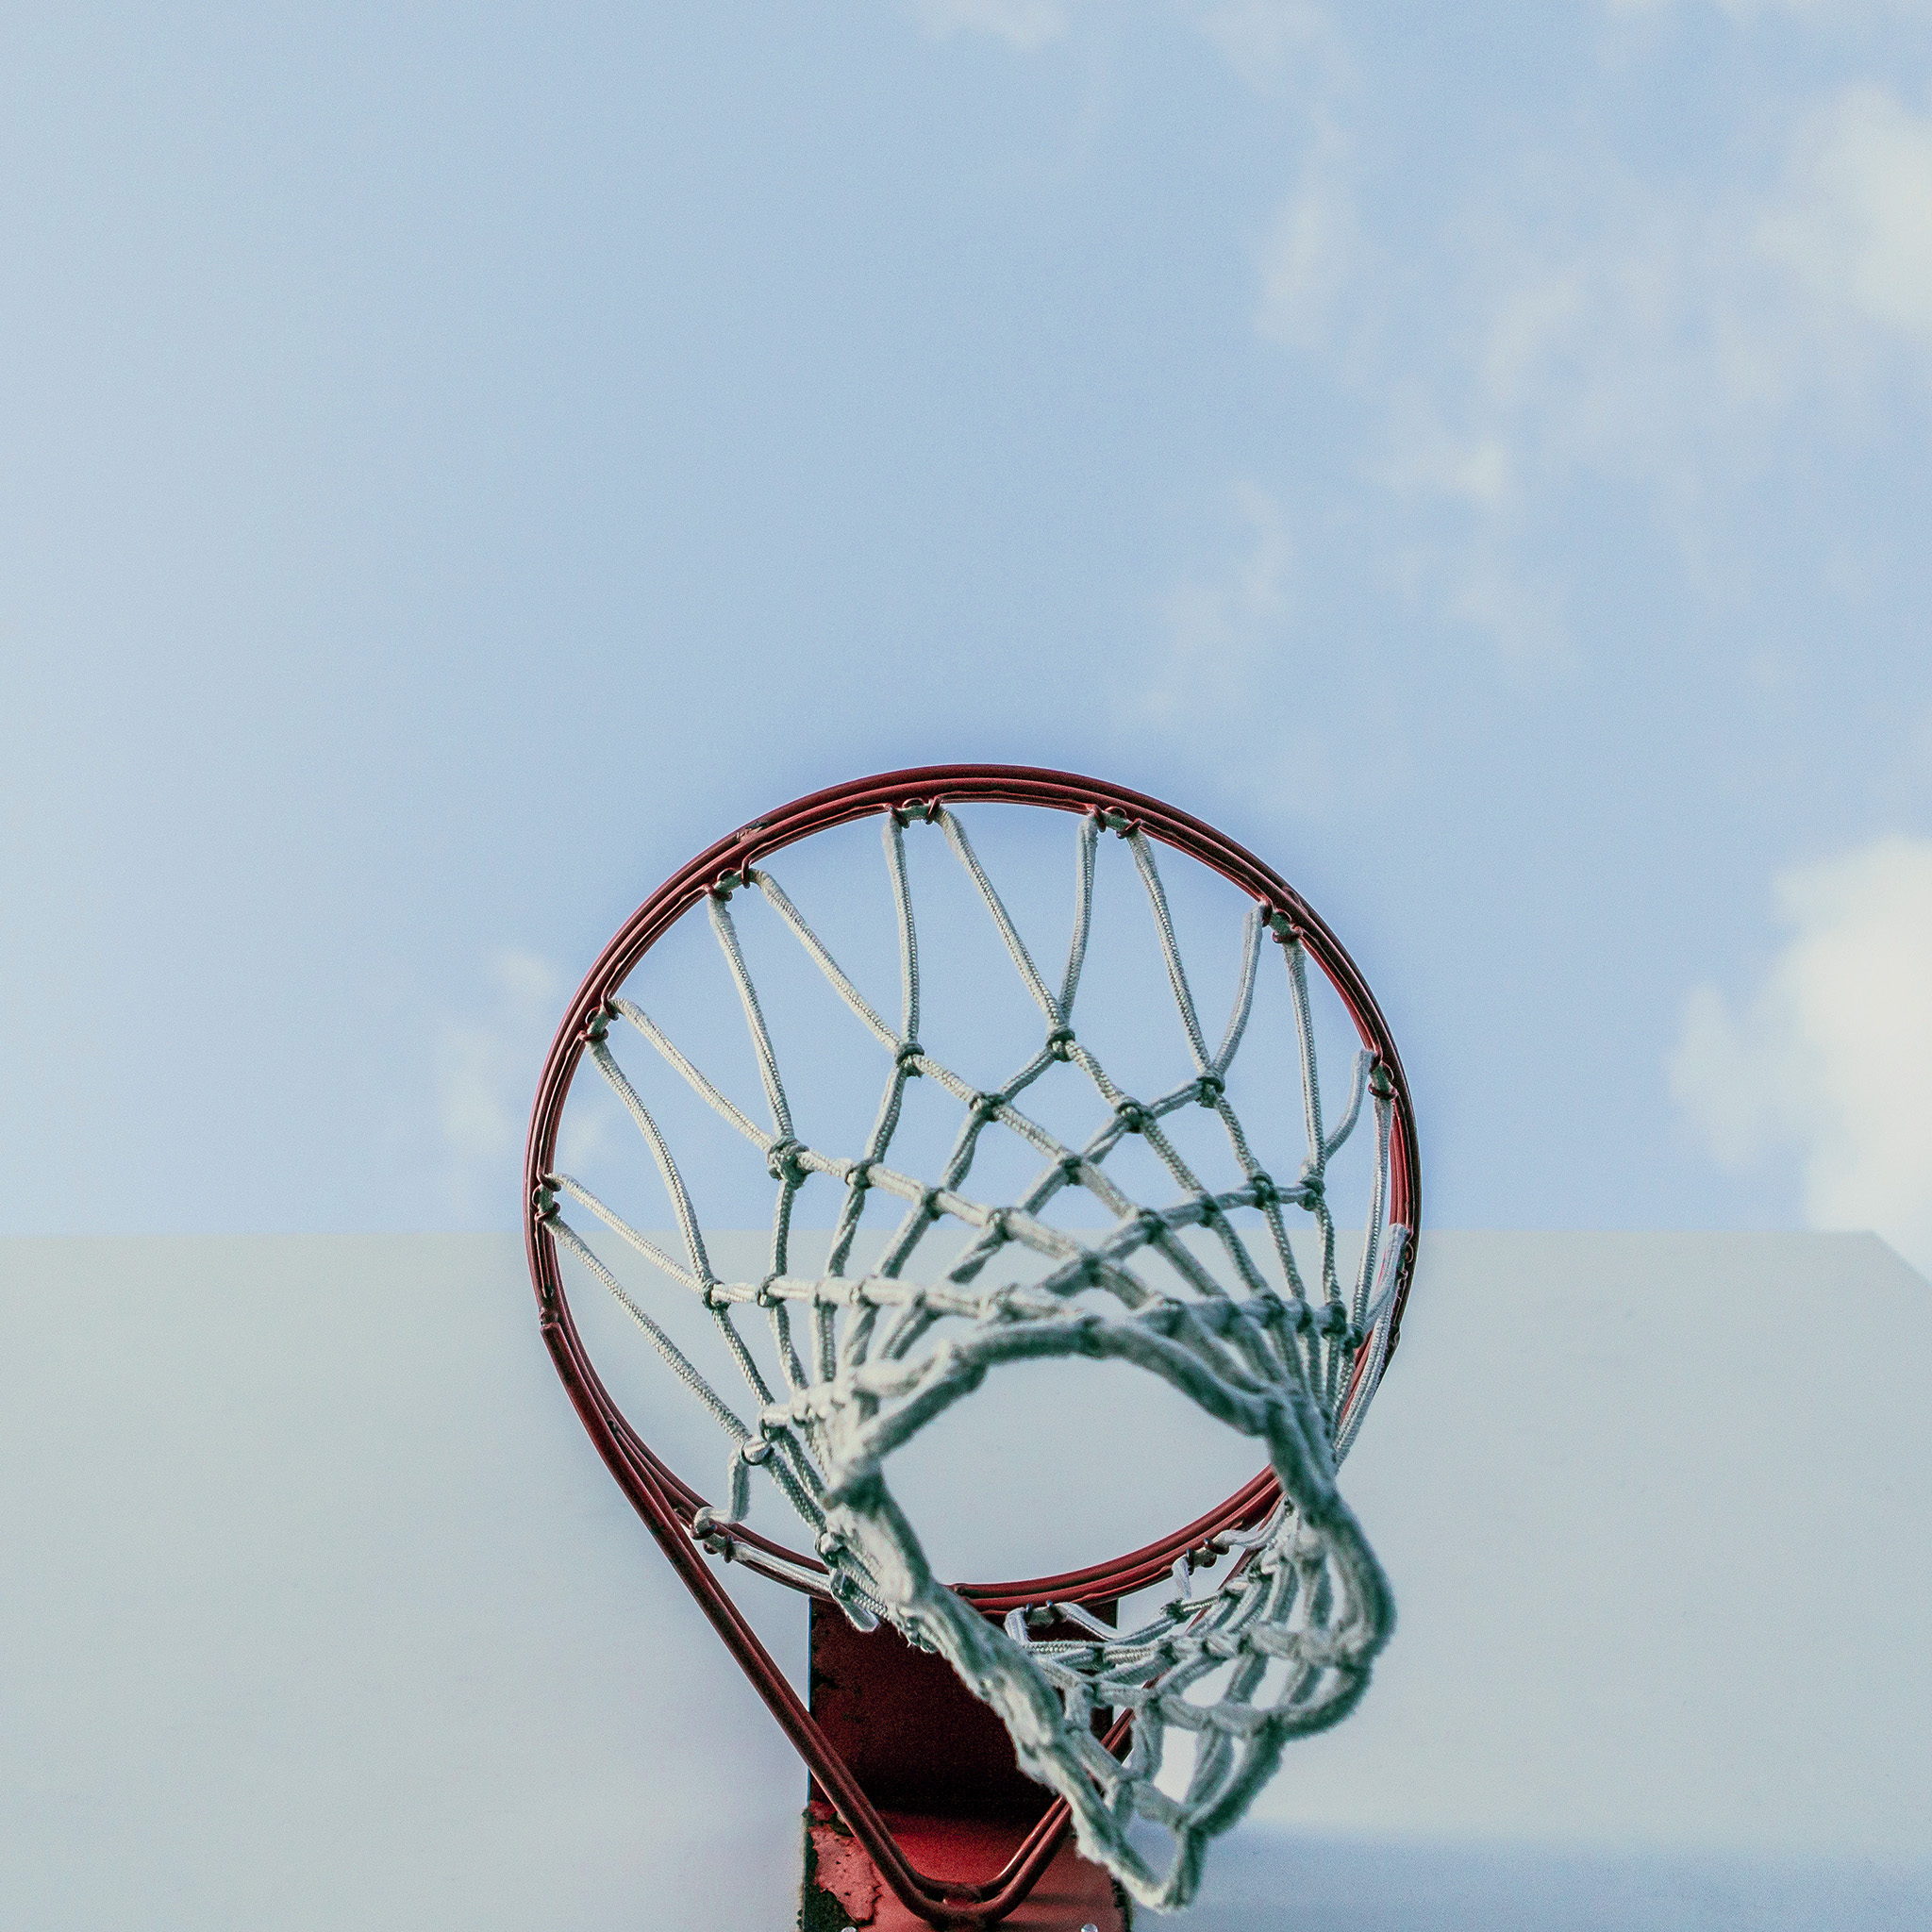 Basketball Iphone Wallpapers: Mr97-basketball-rim-red-sports - Parallax HD